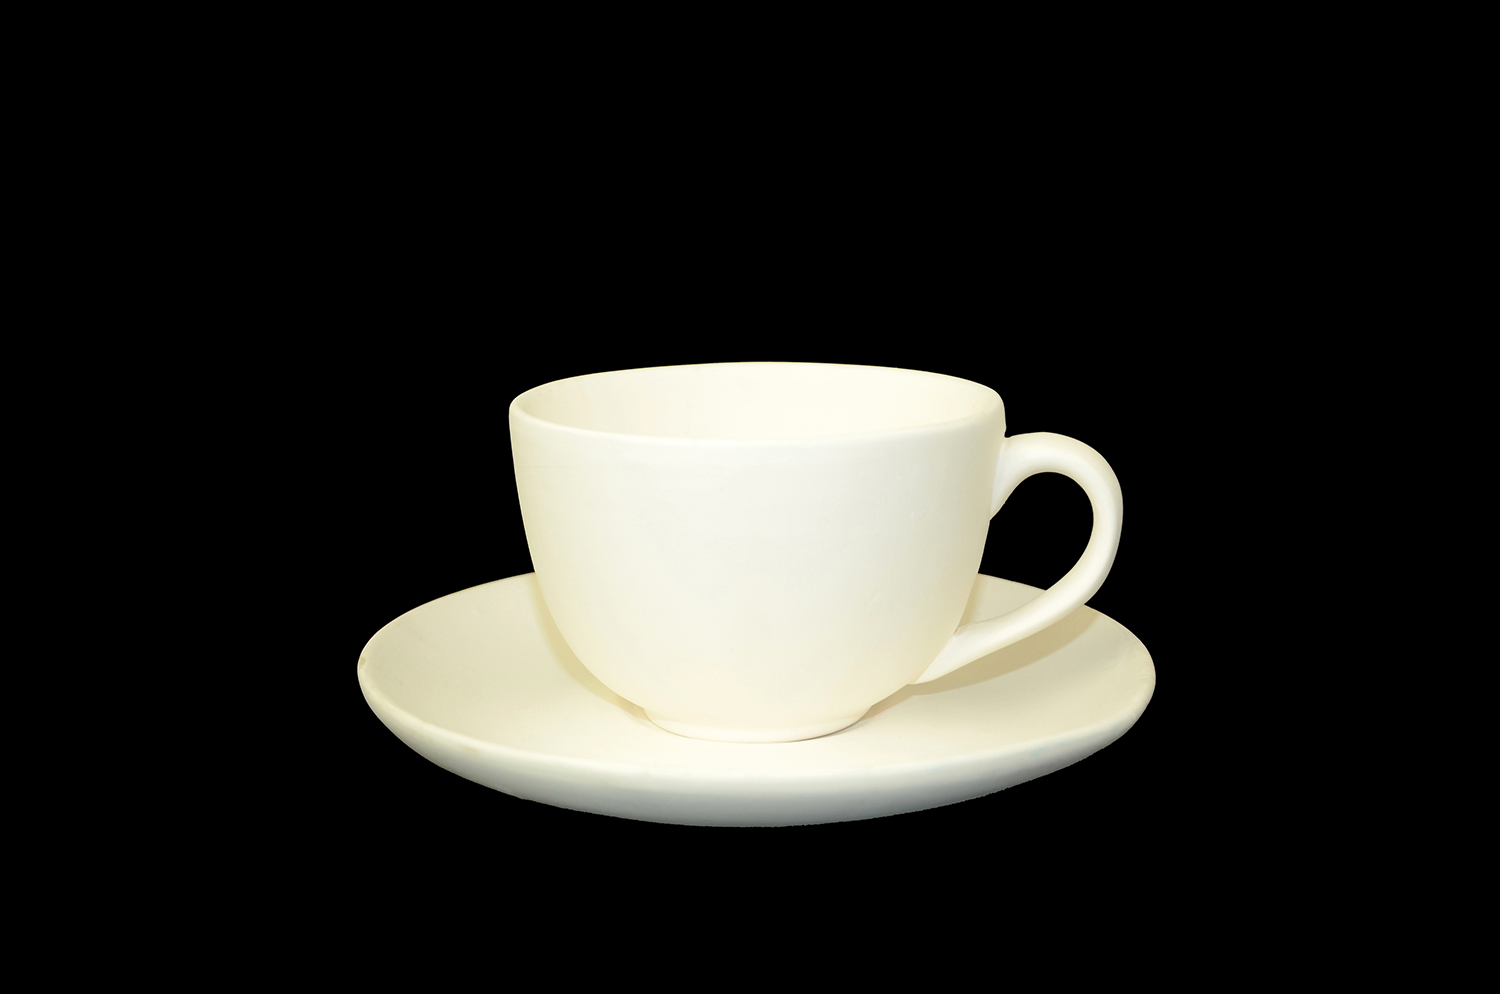 CUPPACCINO CUP & SAUCER